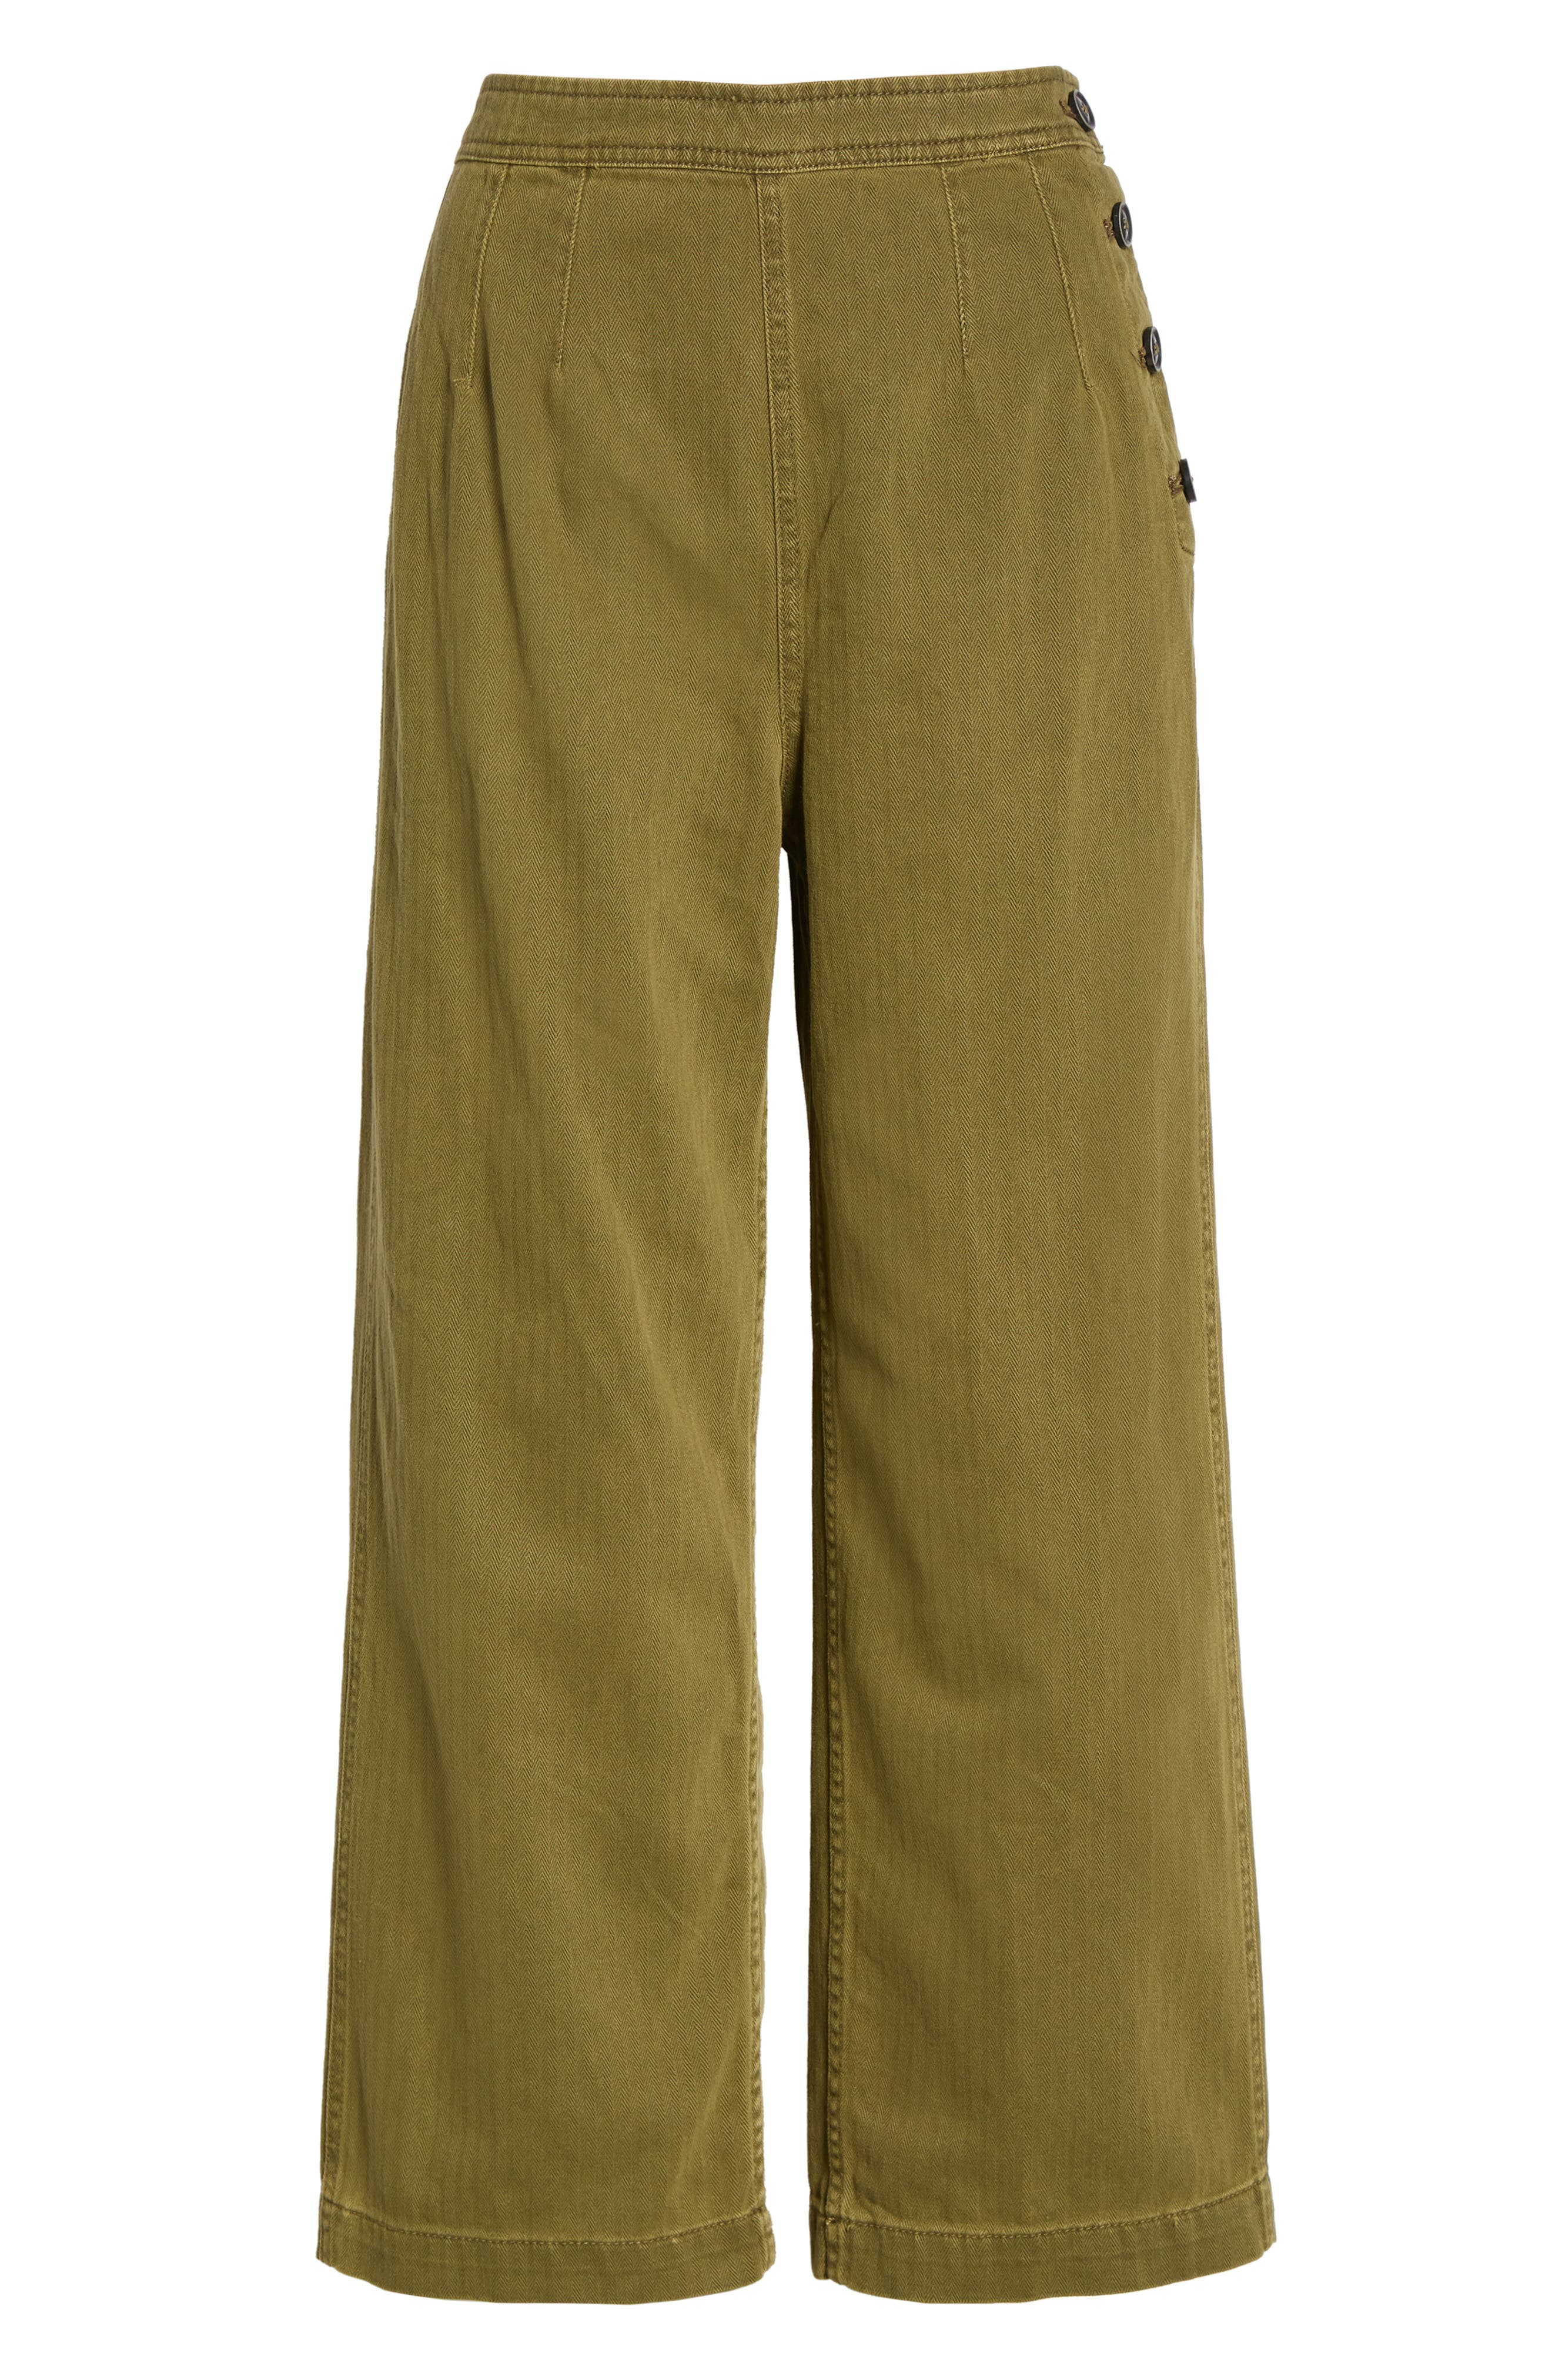 We the Free by Free People Utility Crop Pants,                             Alternate thumbnail 7, color,                             MOSS